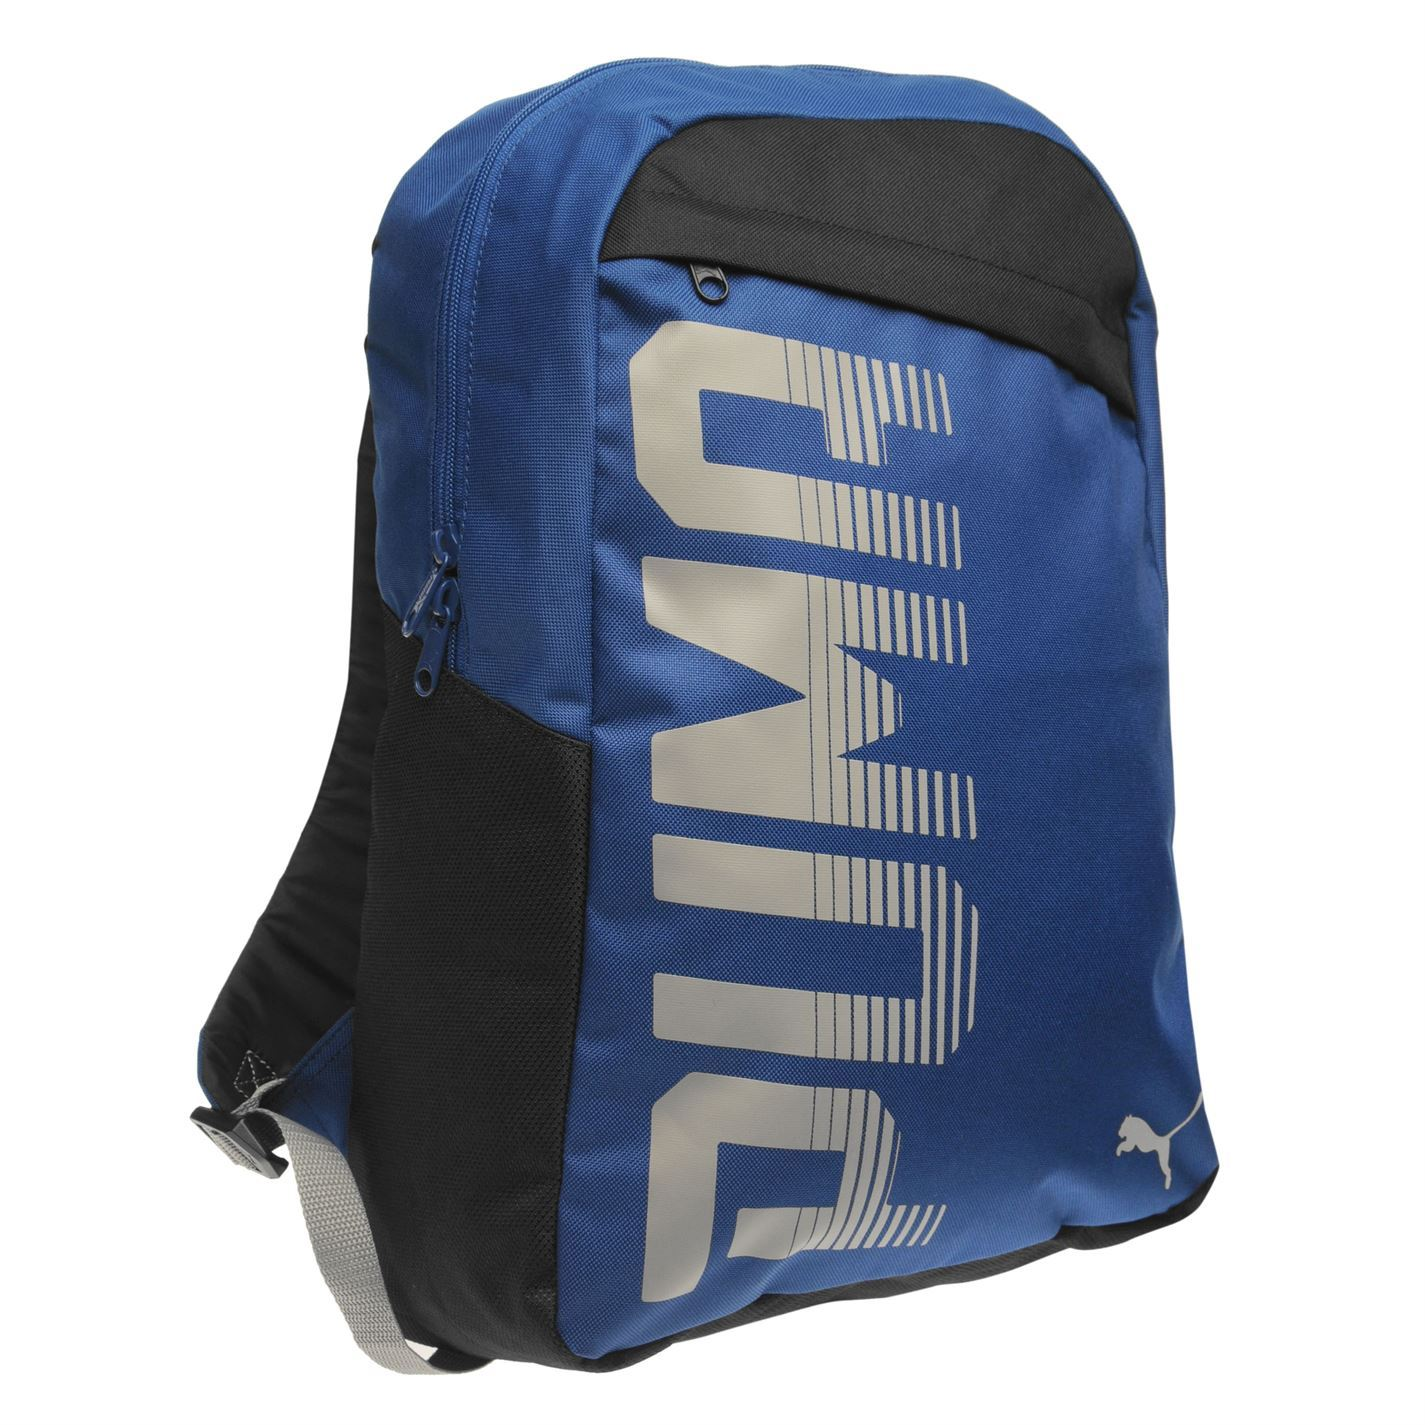 Details about Puma Pioneer Backpack Blue Sports Bag Holdall Rucksack 74ea20295e